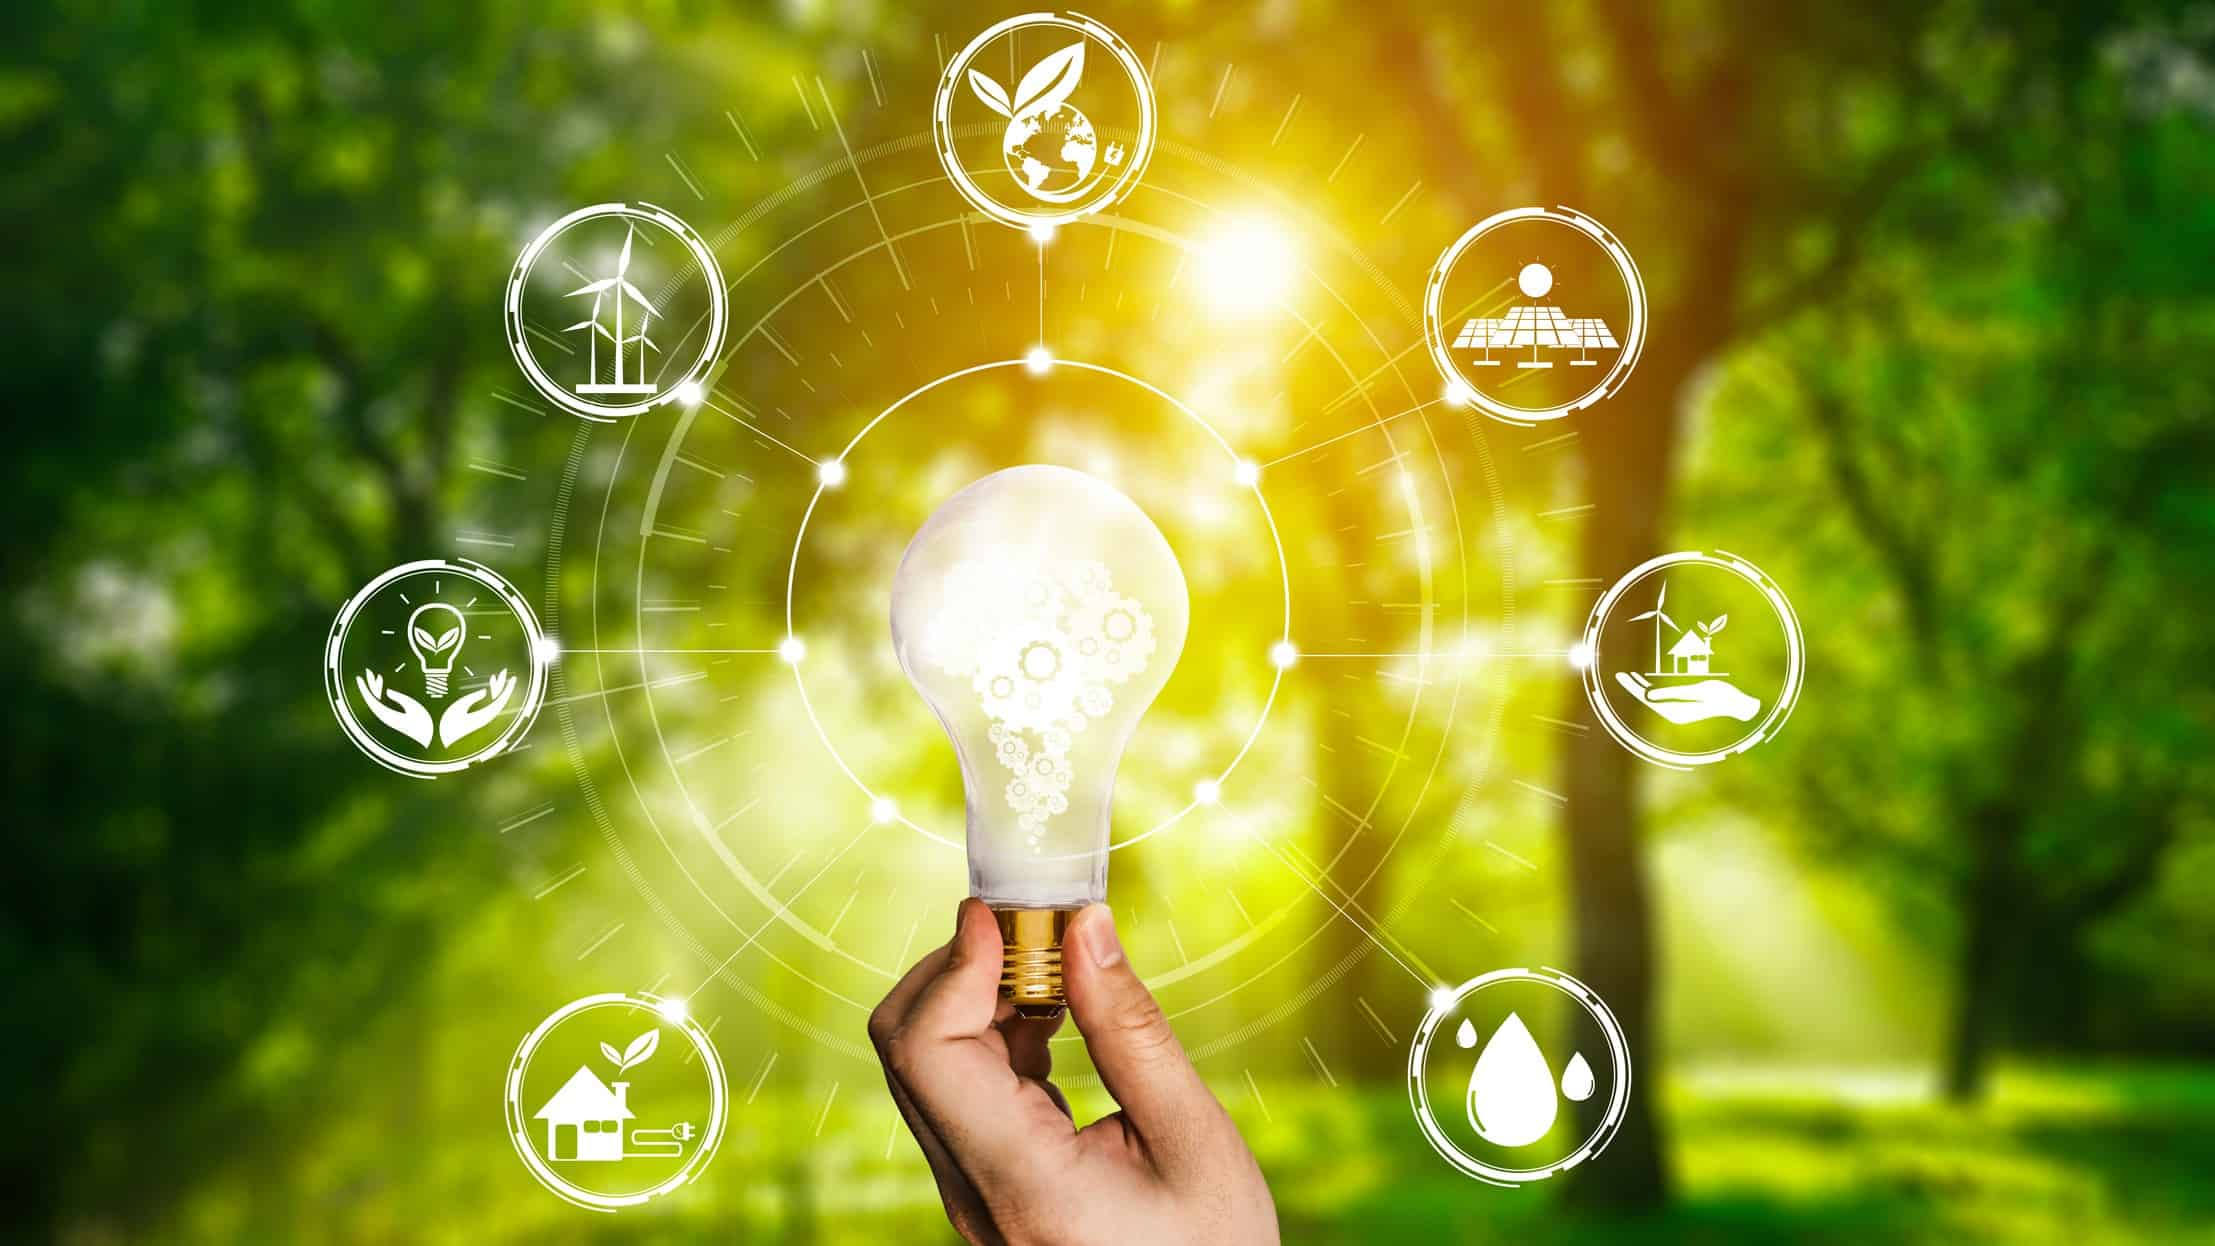 asx renewable energy shares represented by light bulb surrounded by green energy icons